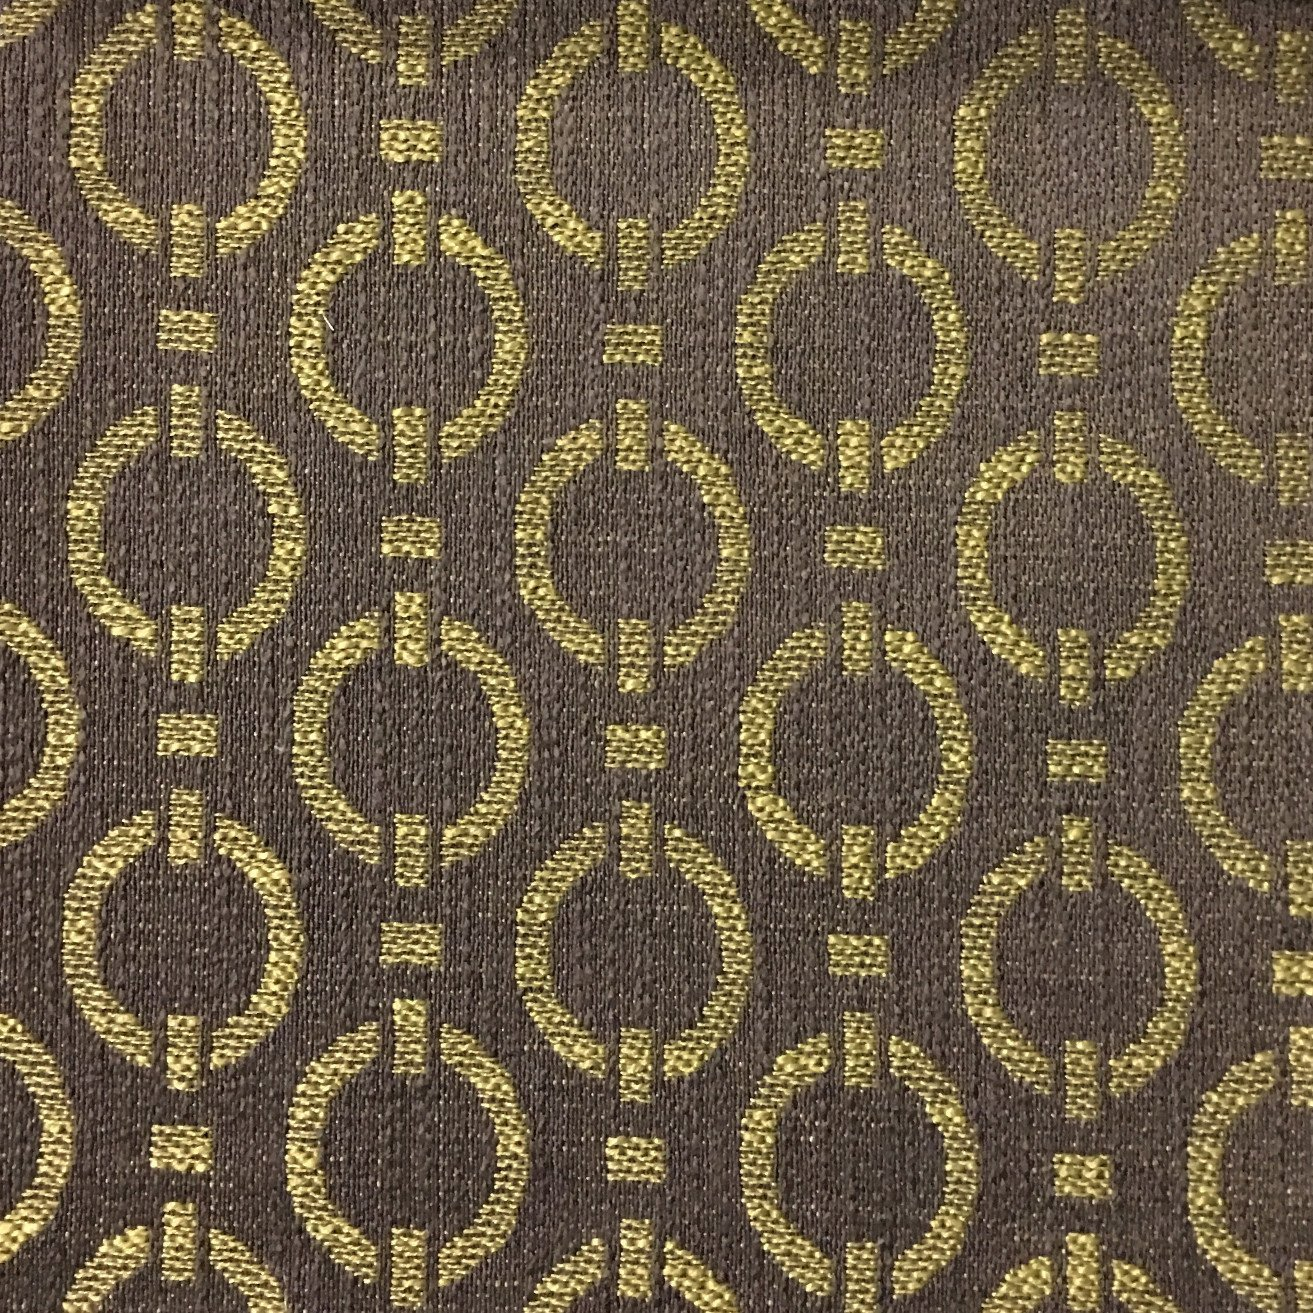 Bond - Geometric Pattern Woven Texture Upholstery Fabric by the Yard for upholstery fabric designs patterns  67qdu